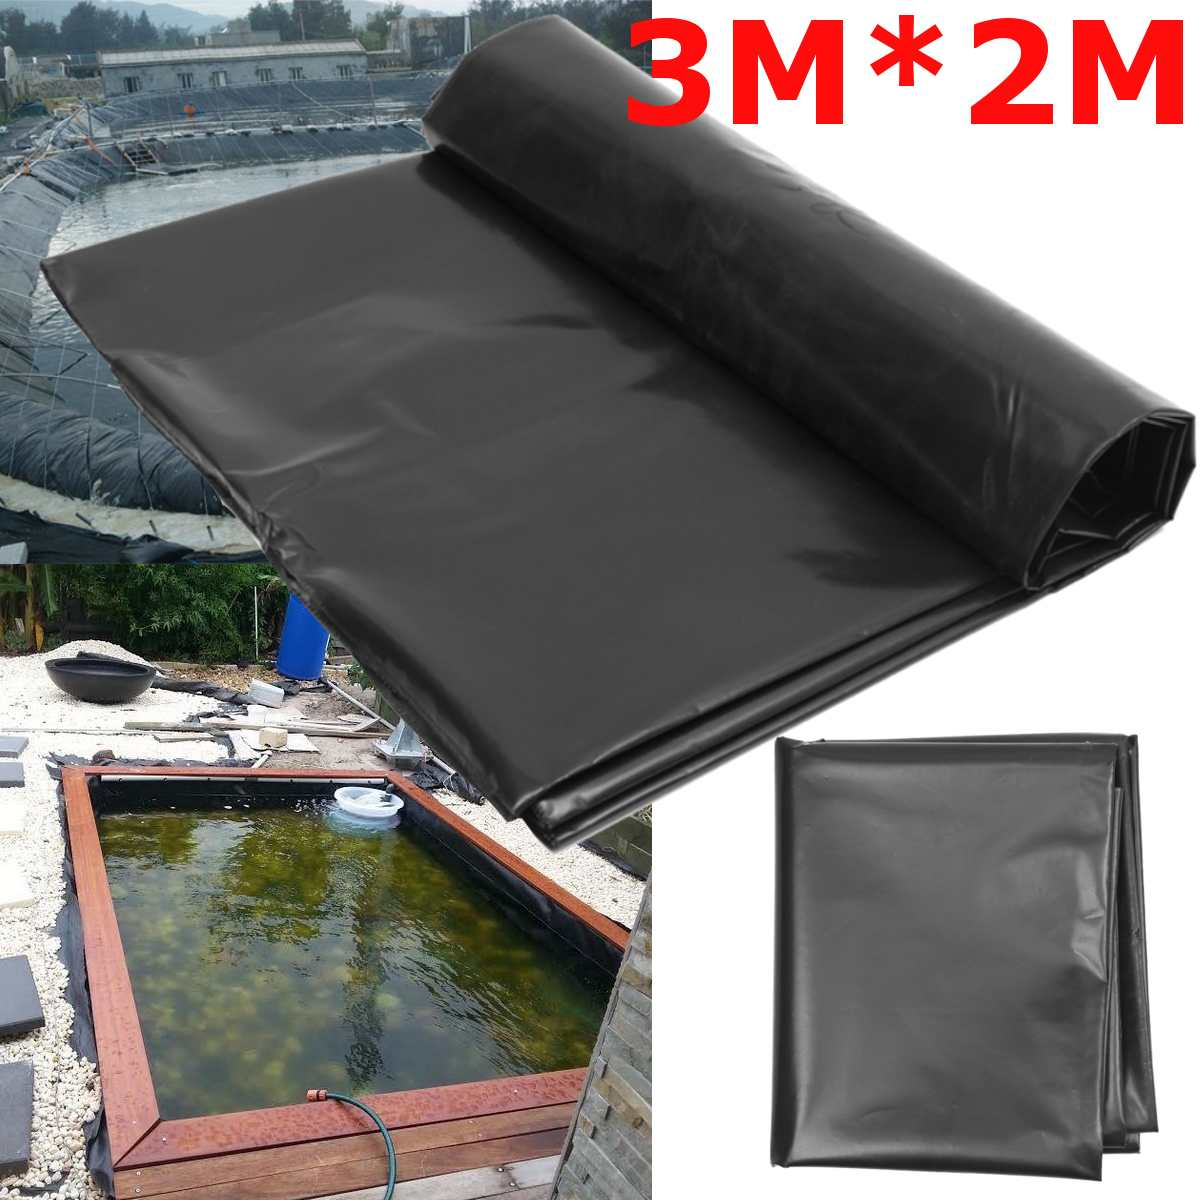 3X2M Black Fish Pond Liner Cloth Home Garden Pool Rerced Hdpe Heavy  Landscaping Pool Pond Waterproof Liner Cloth New tout Piscine Geomembrane